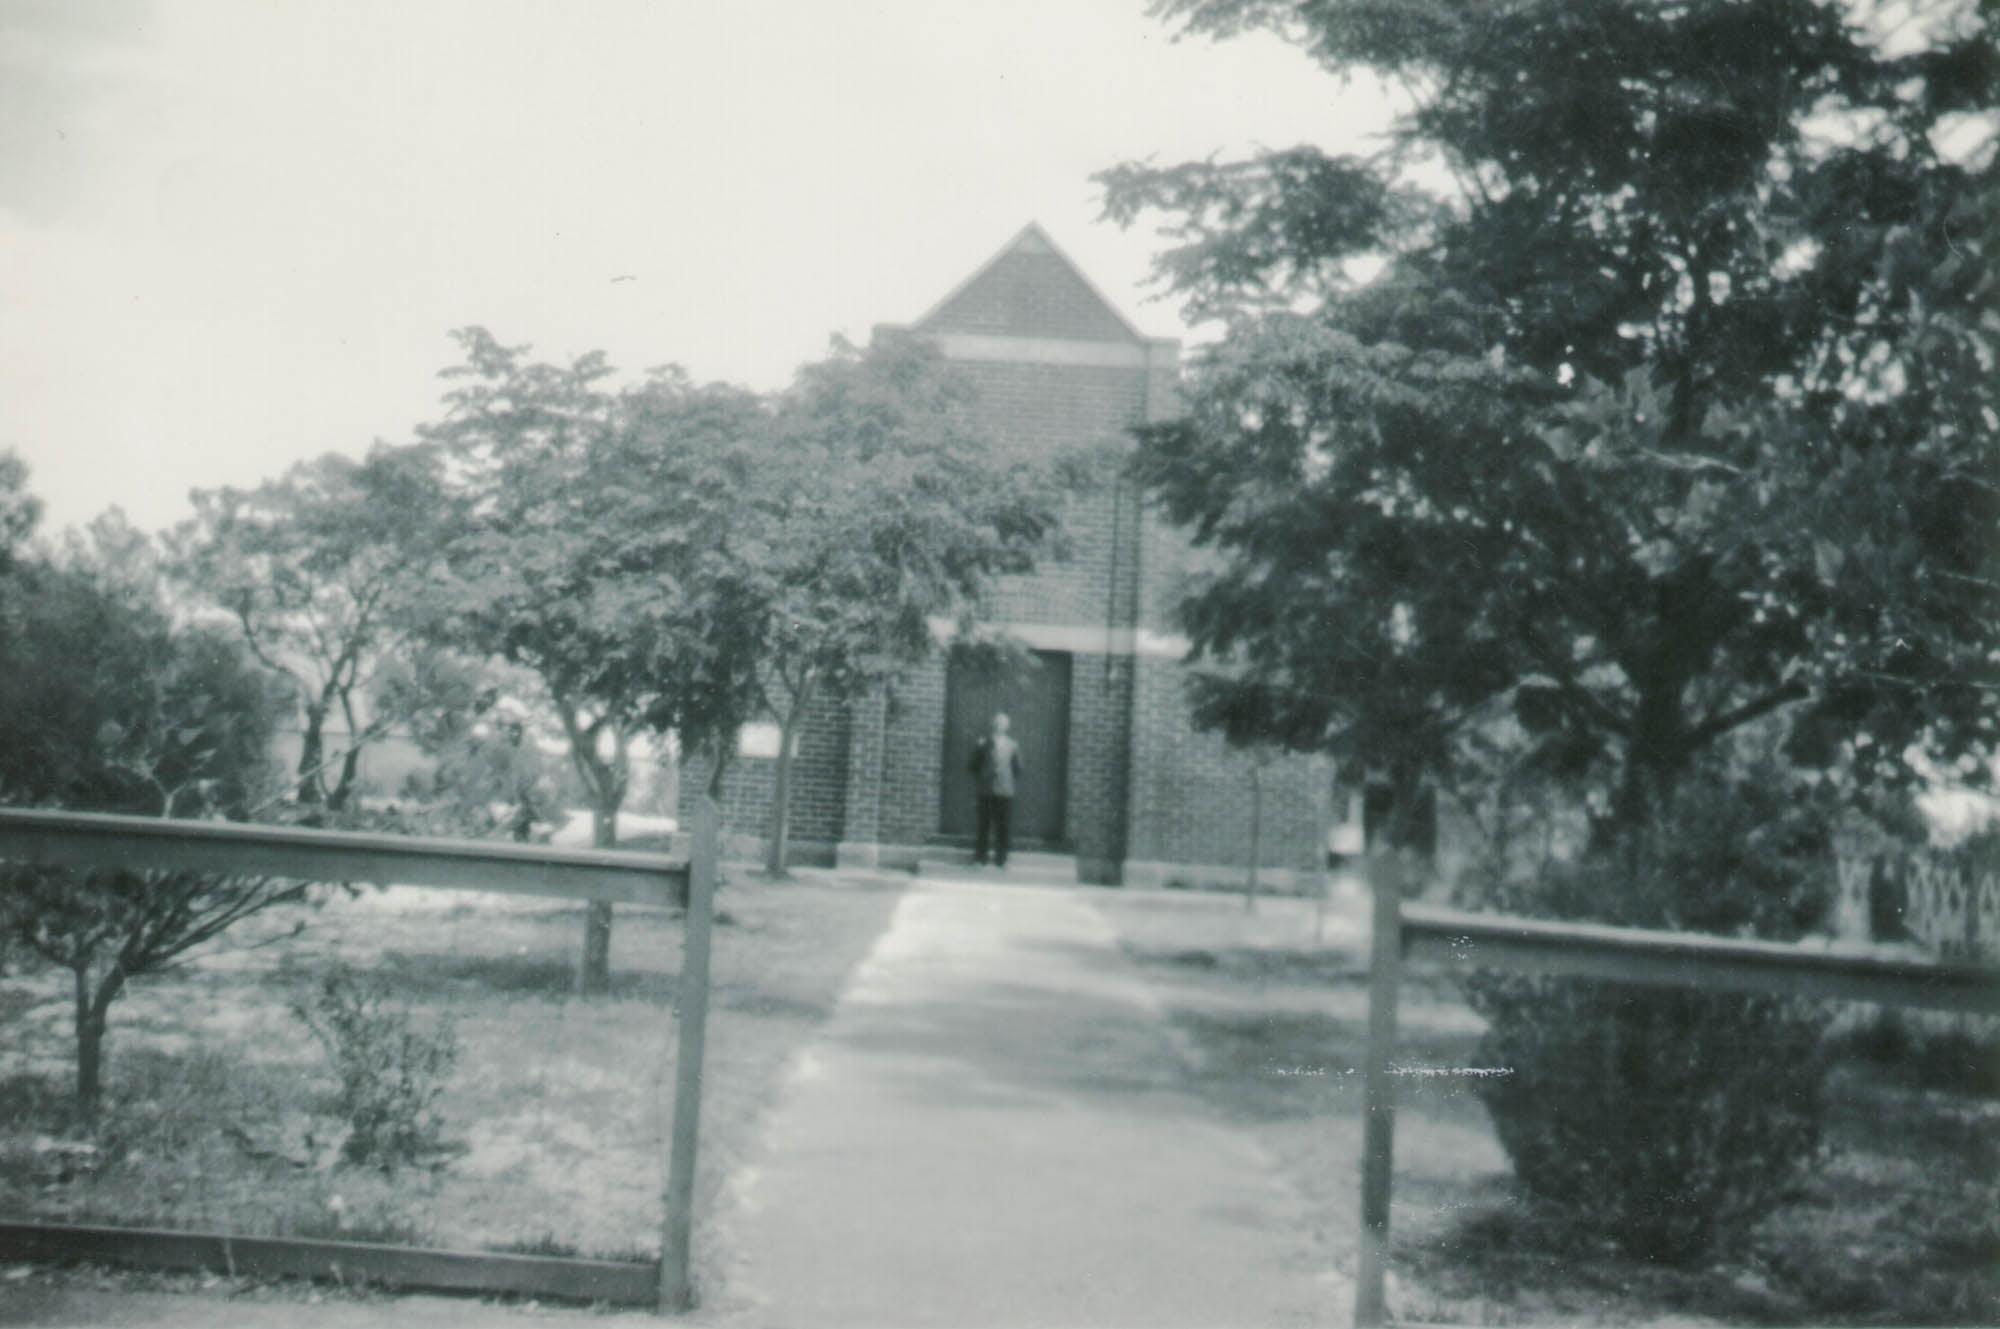 The-First-Church-Building-and-Garden